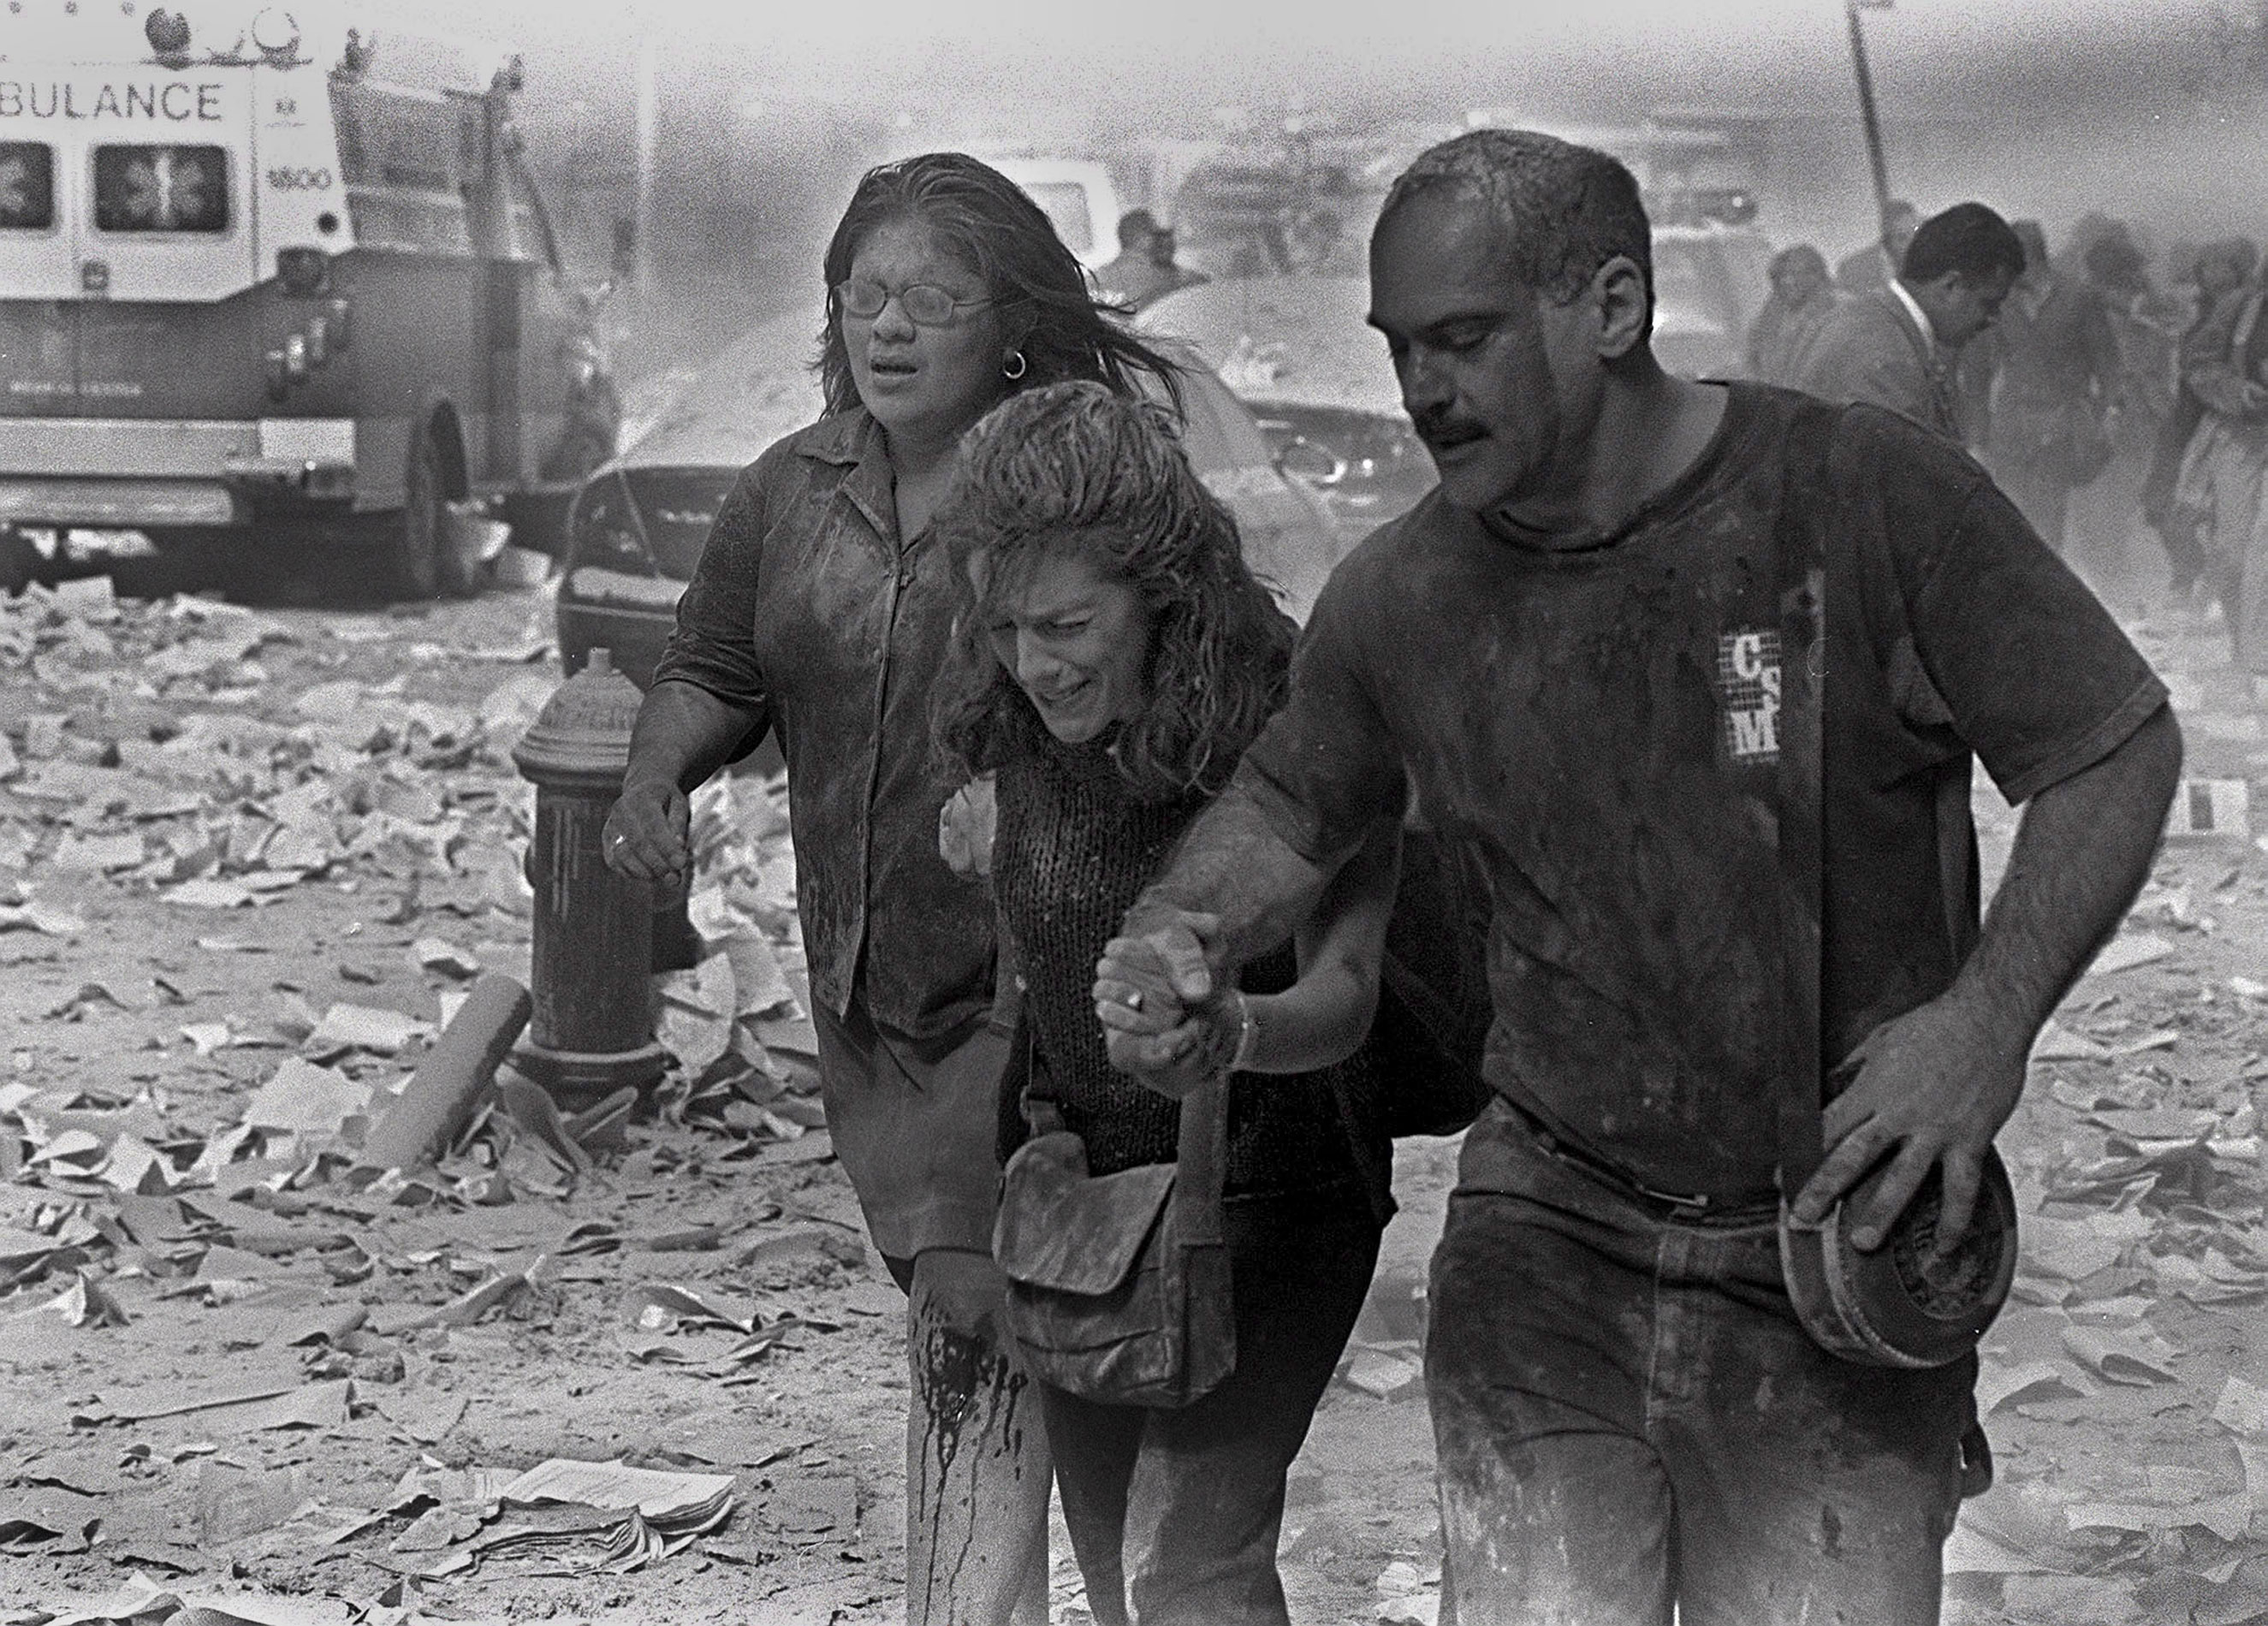 Julie McDermott, center, walks with other victims as they make their way amid debris near the World Trade Center in New York City on Sept. 11, 2001.